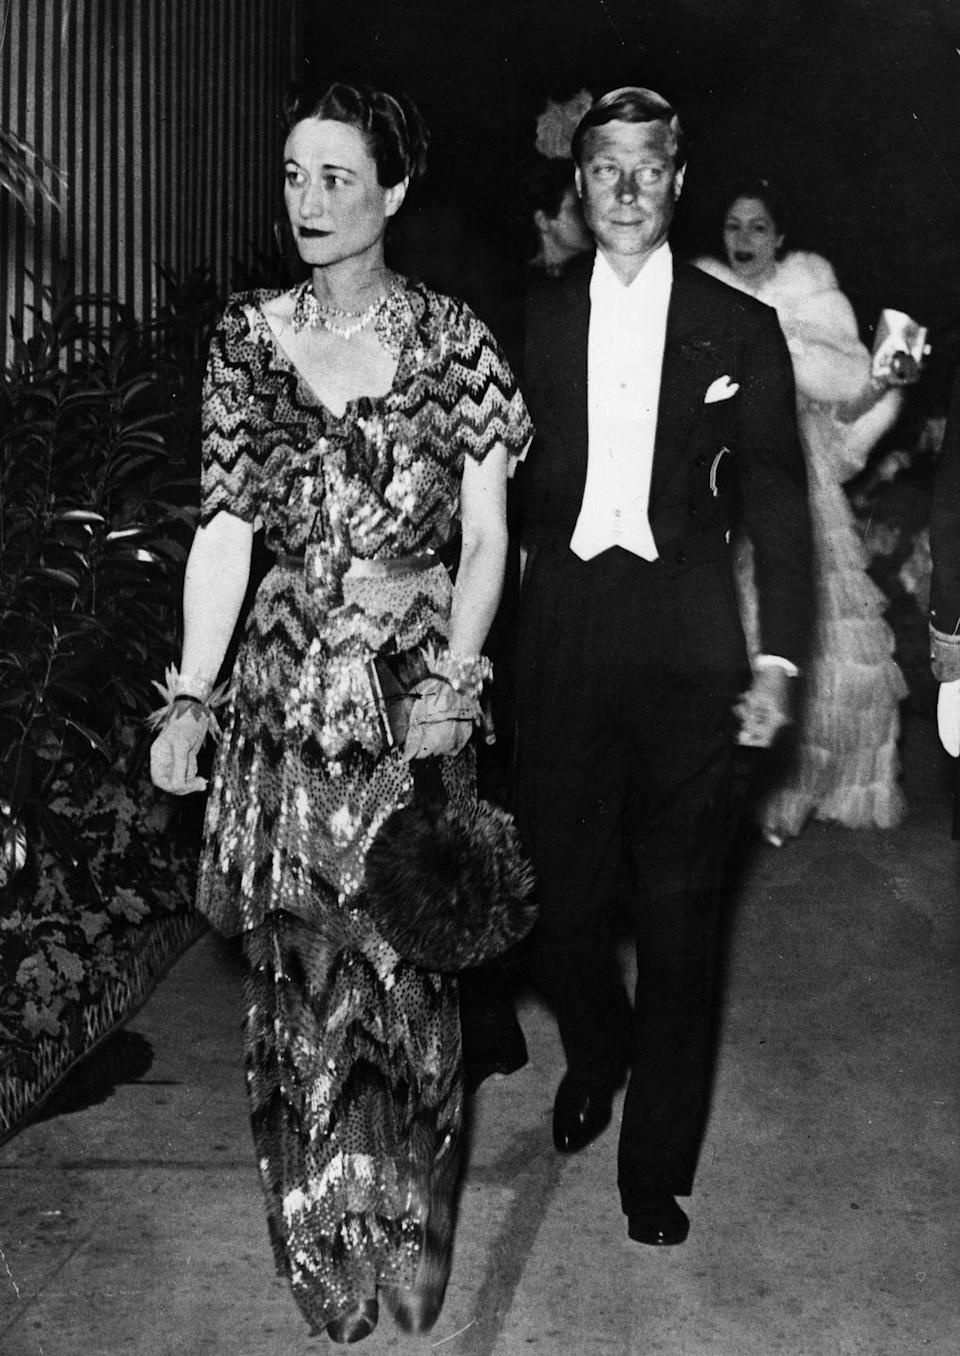 <p>American socialite Wallis married The Duke of Windsor (formerly King Edward VIII of Great Britain) in 1937. Wallis grew up in Baltimore, Maryland, and was married twice before wedding the Duke. But in a true romantic gesture, he gave up the throne and his title of king to be with her. </p>